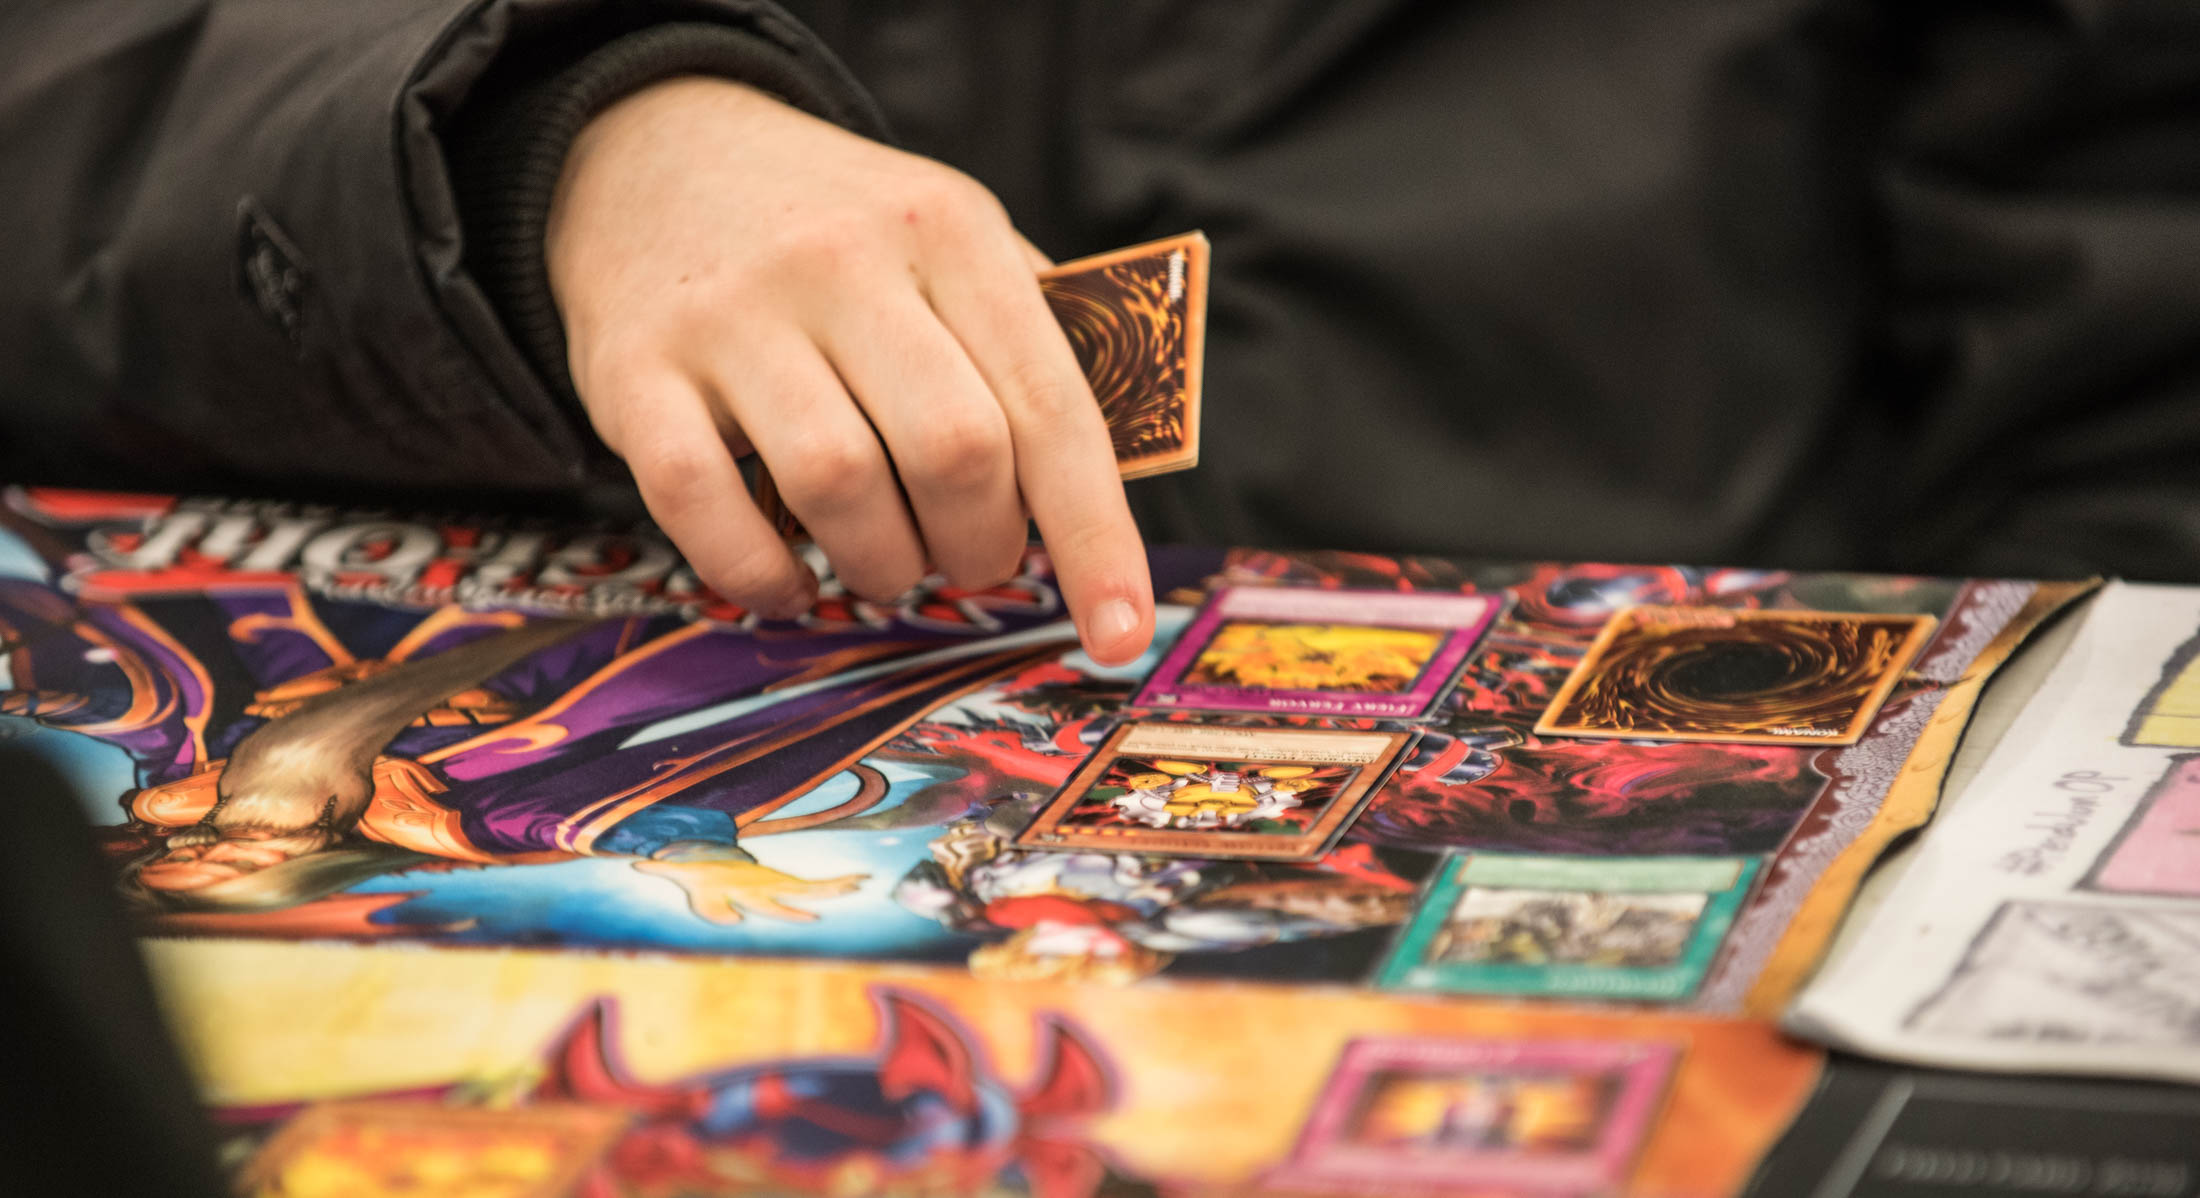 Card games being played at Big Dog Books, Perth